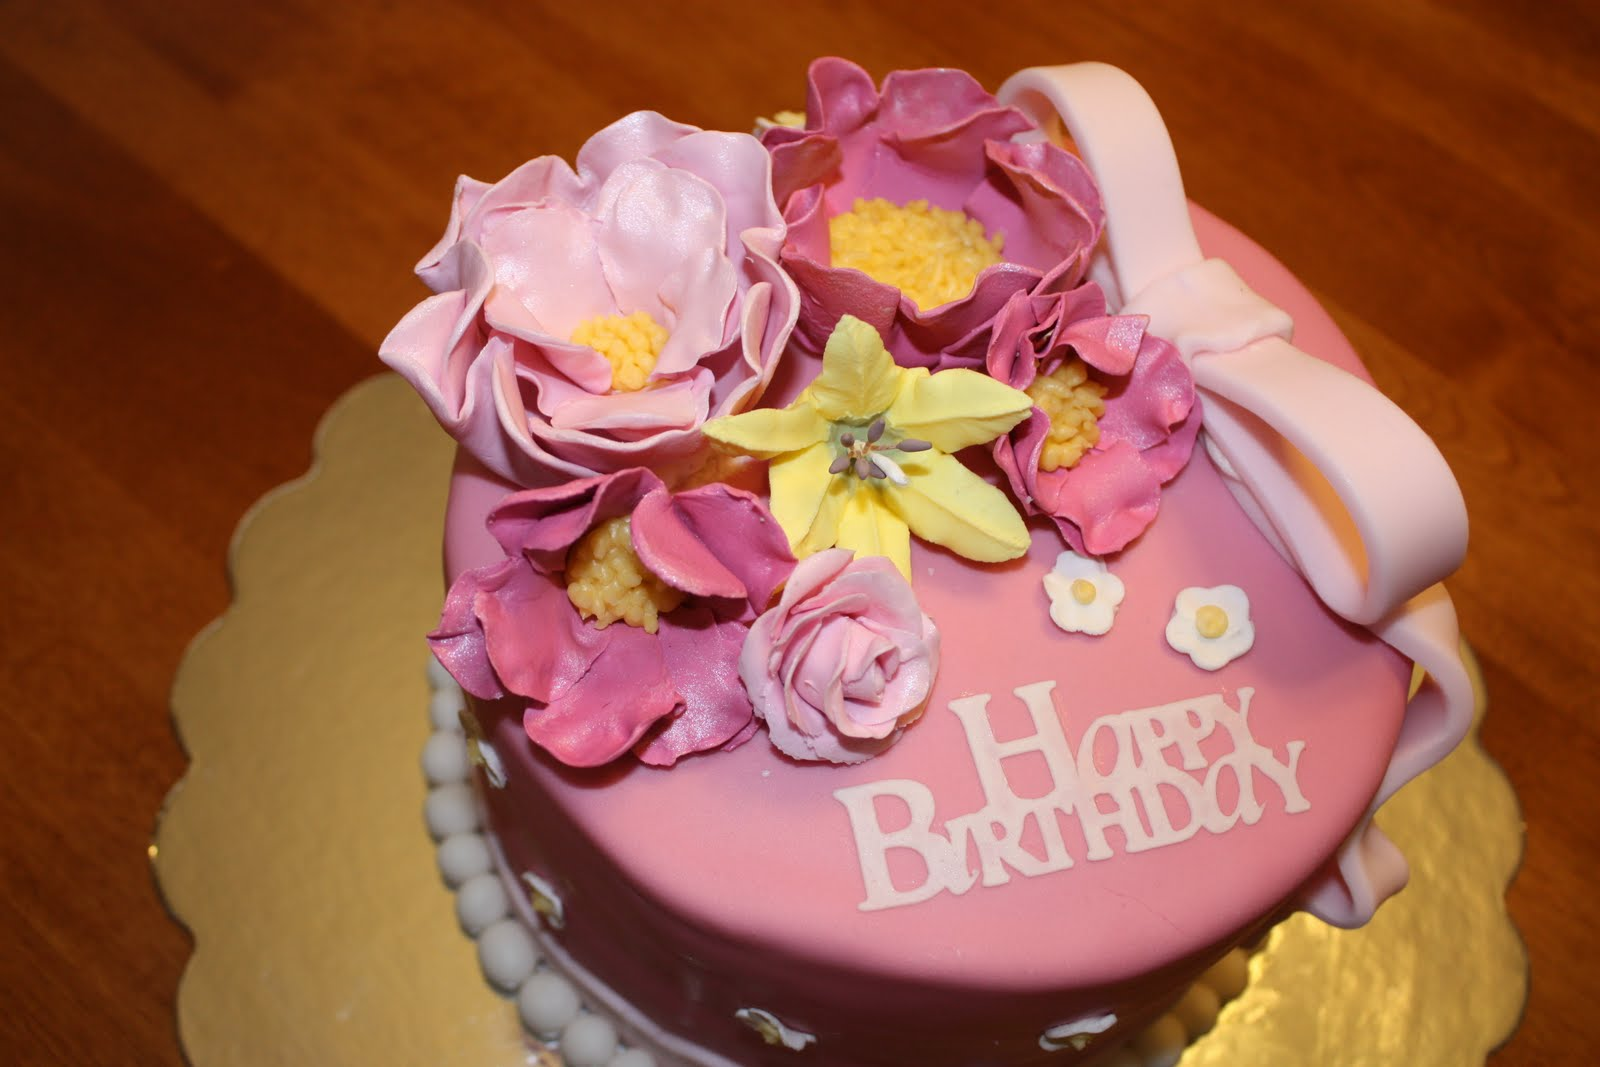 flower birthday cake 10 best happy birthday wishes images with quotes 4135